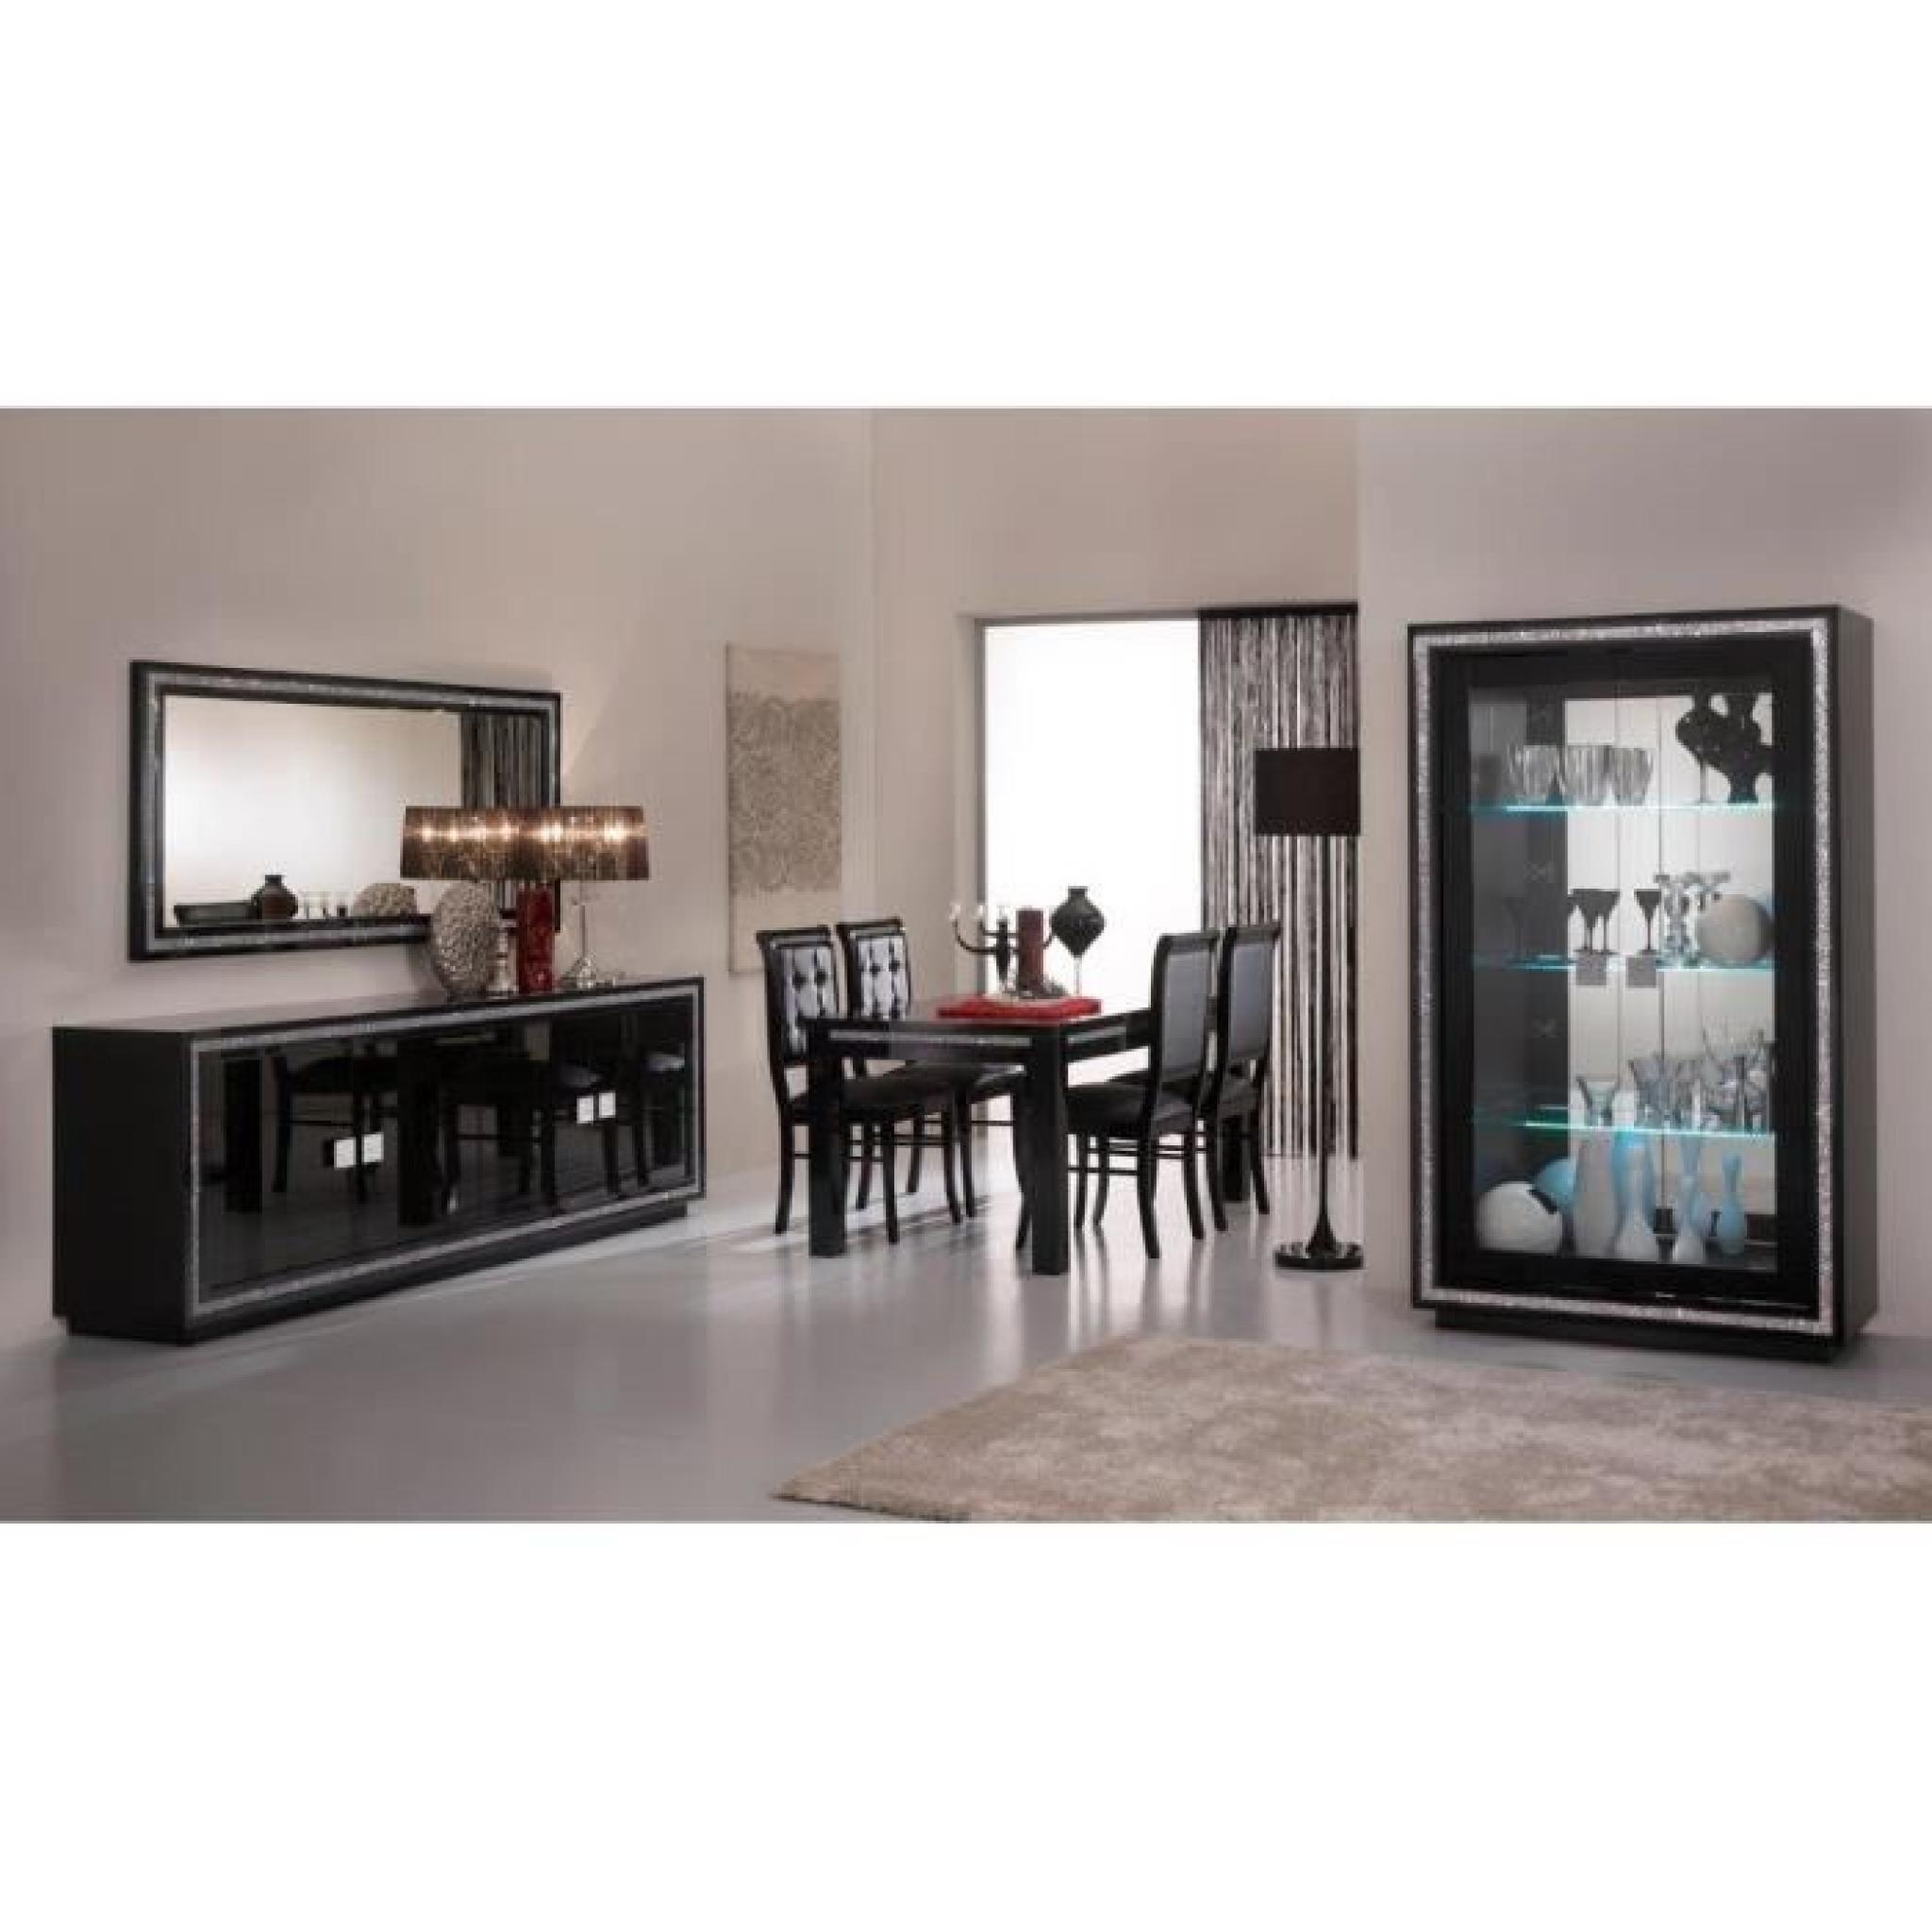 prestige laquee noire ensemble salle a manger vitrine 2 portes meuble tv table salon. Black Bedroom Furniture Sets. Home Design Ideas